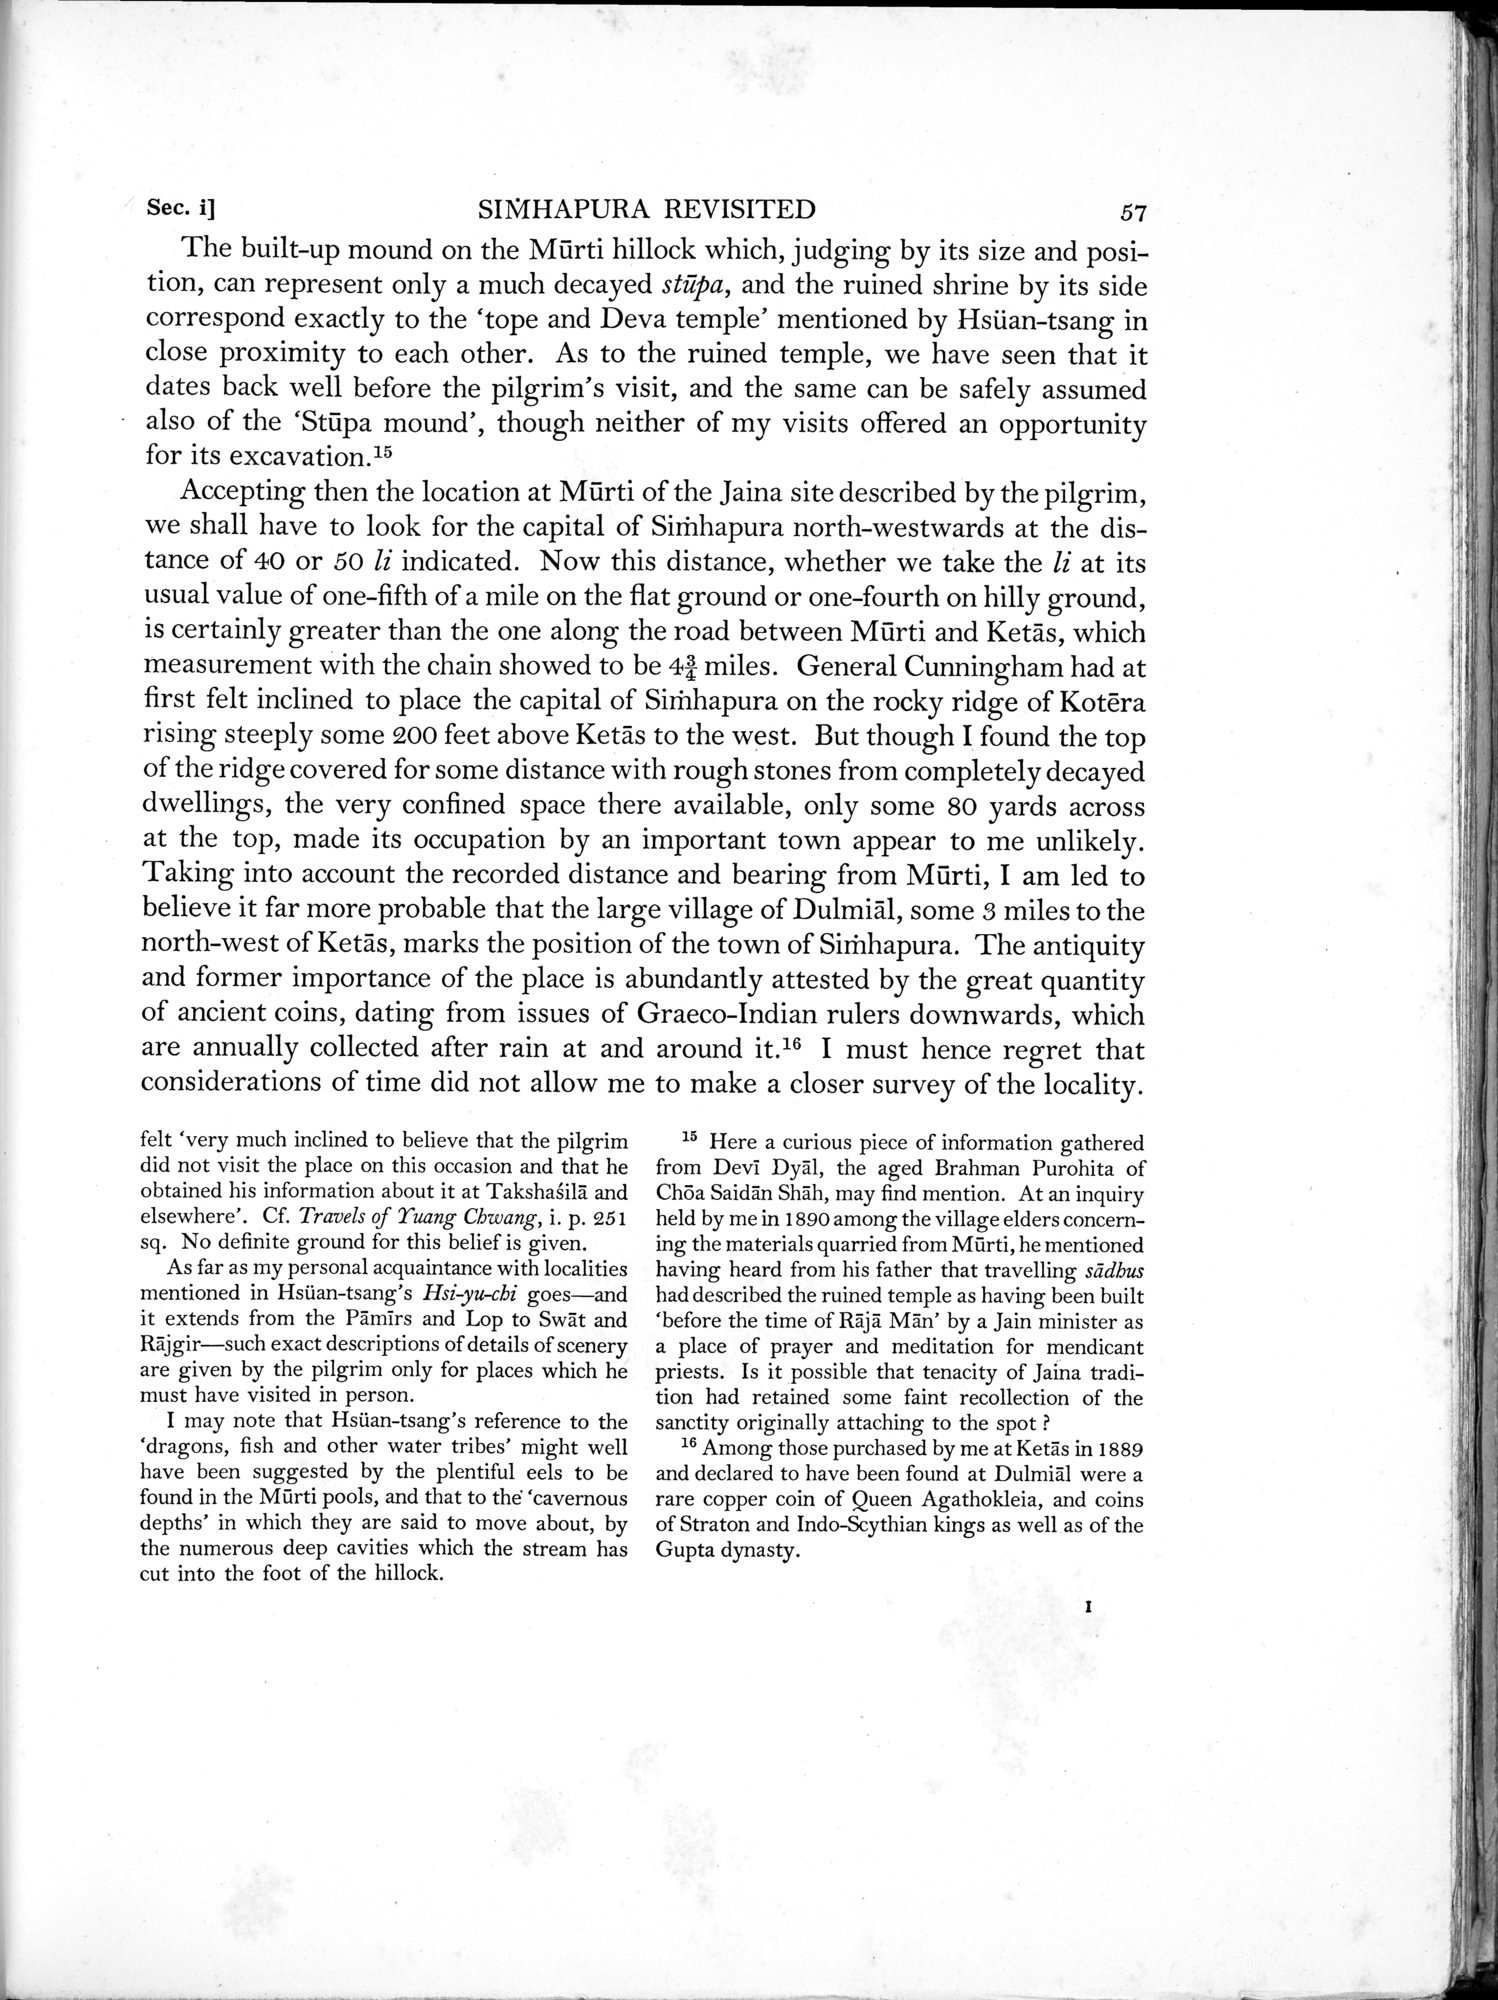 Archaeological Reconnaissances in North-Western India and South-Eastern Īrān : vol.1 / Page 101 (Grayscale High Resolution Image)